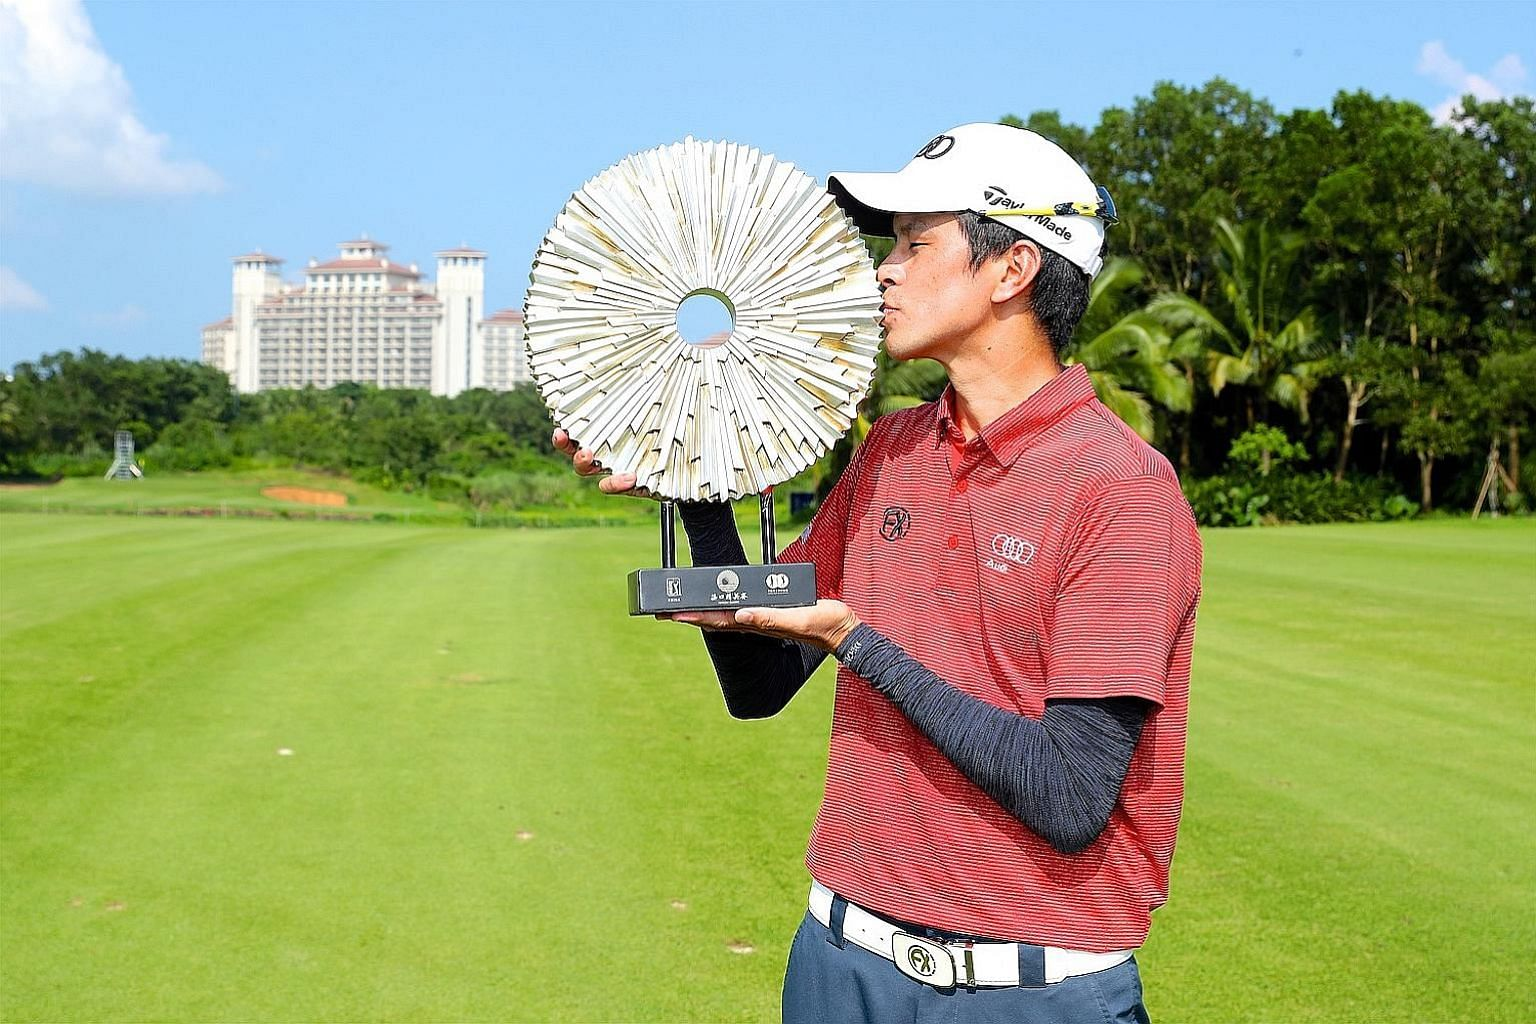 Quincy Quek earned his biggest professional win at the Haikou Classic, becoming the first Singaporean to win on the PGA Tour Series-China. He raked in 288,000 yuan (S$55,890).